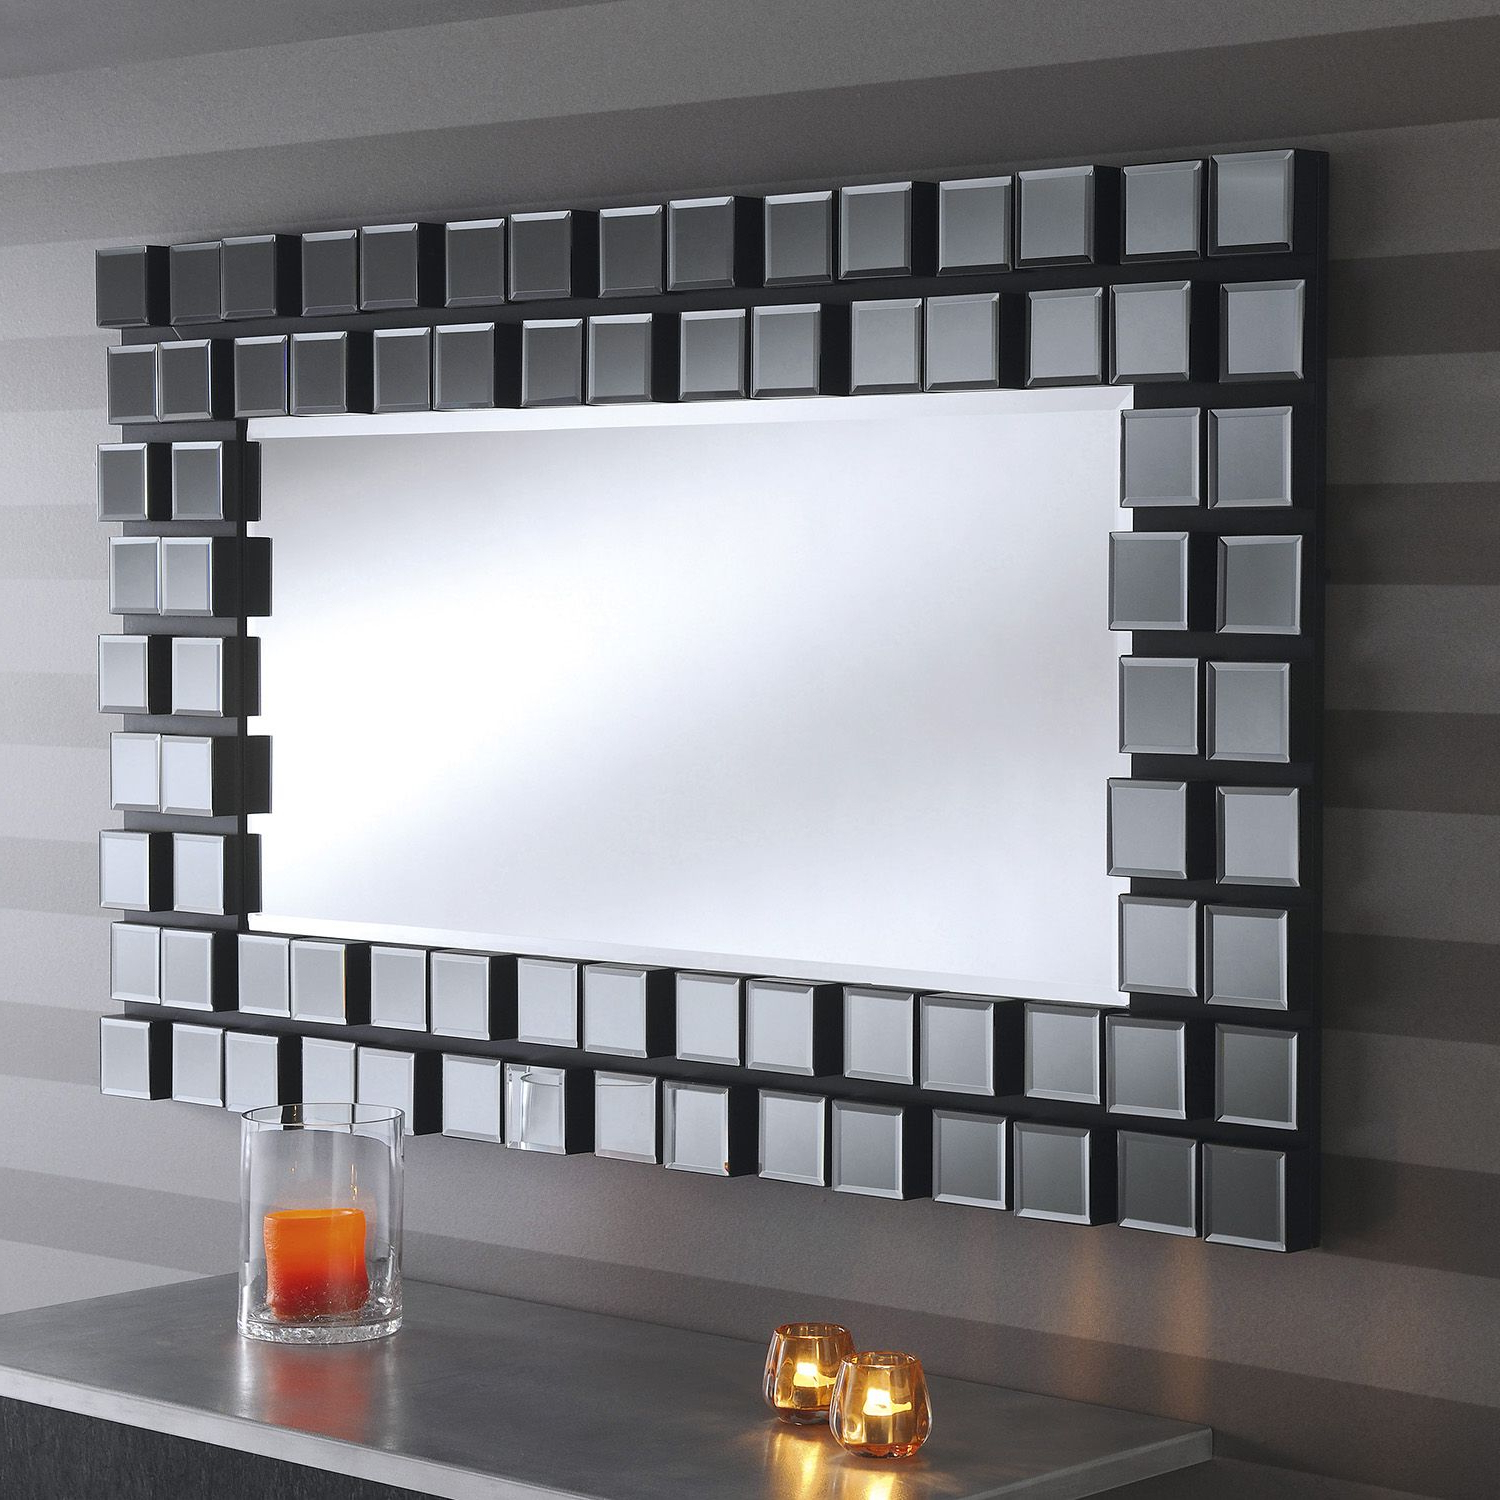 Yearn Pixel Wall Mirror In Grey – Next Day Delivery Yearn Pixel Wall Inside Recent Gray Wall Mirrors (View 19 of 20)